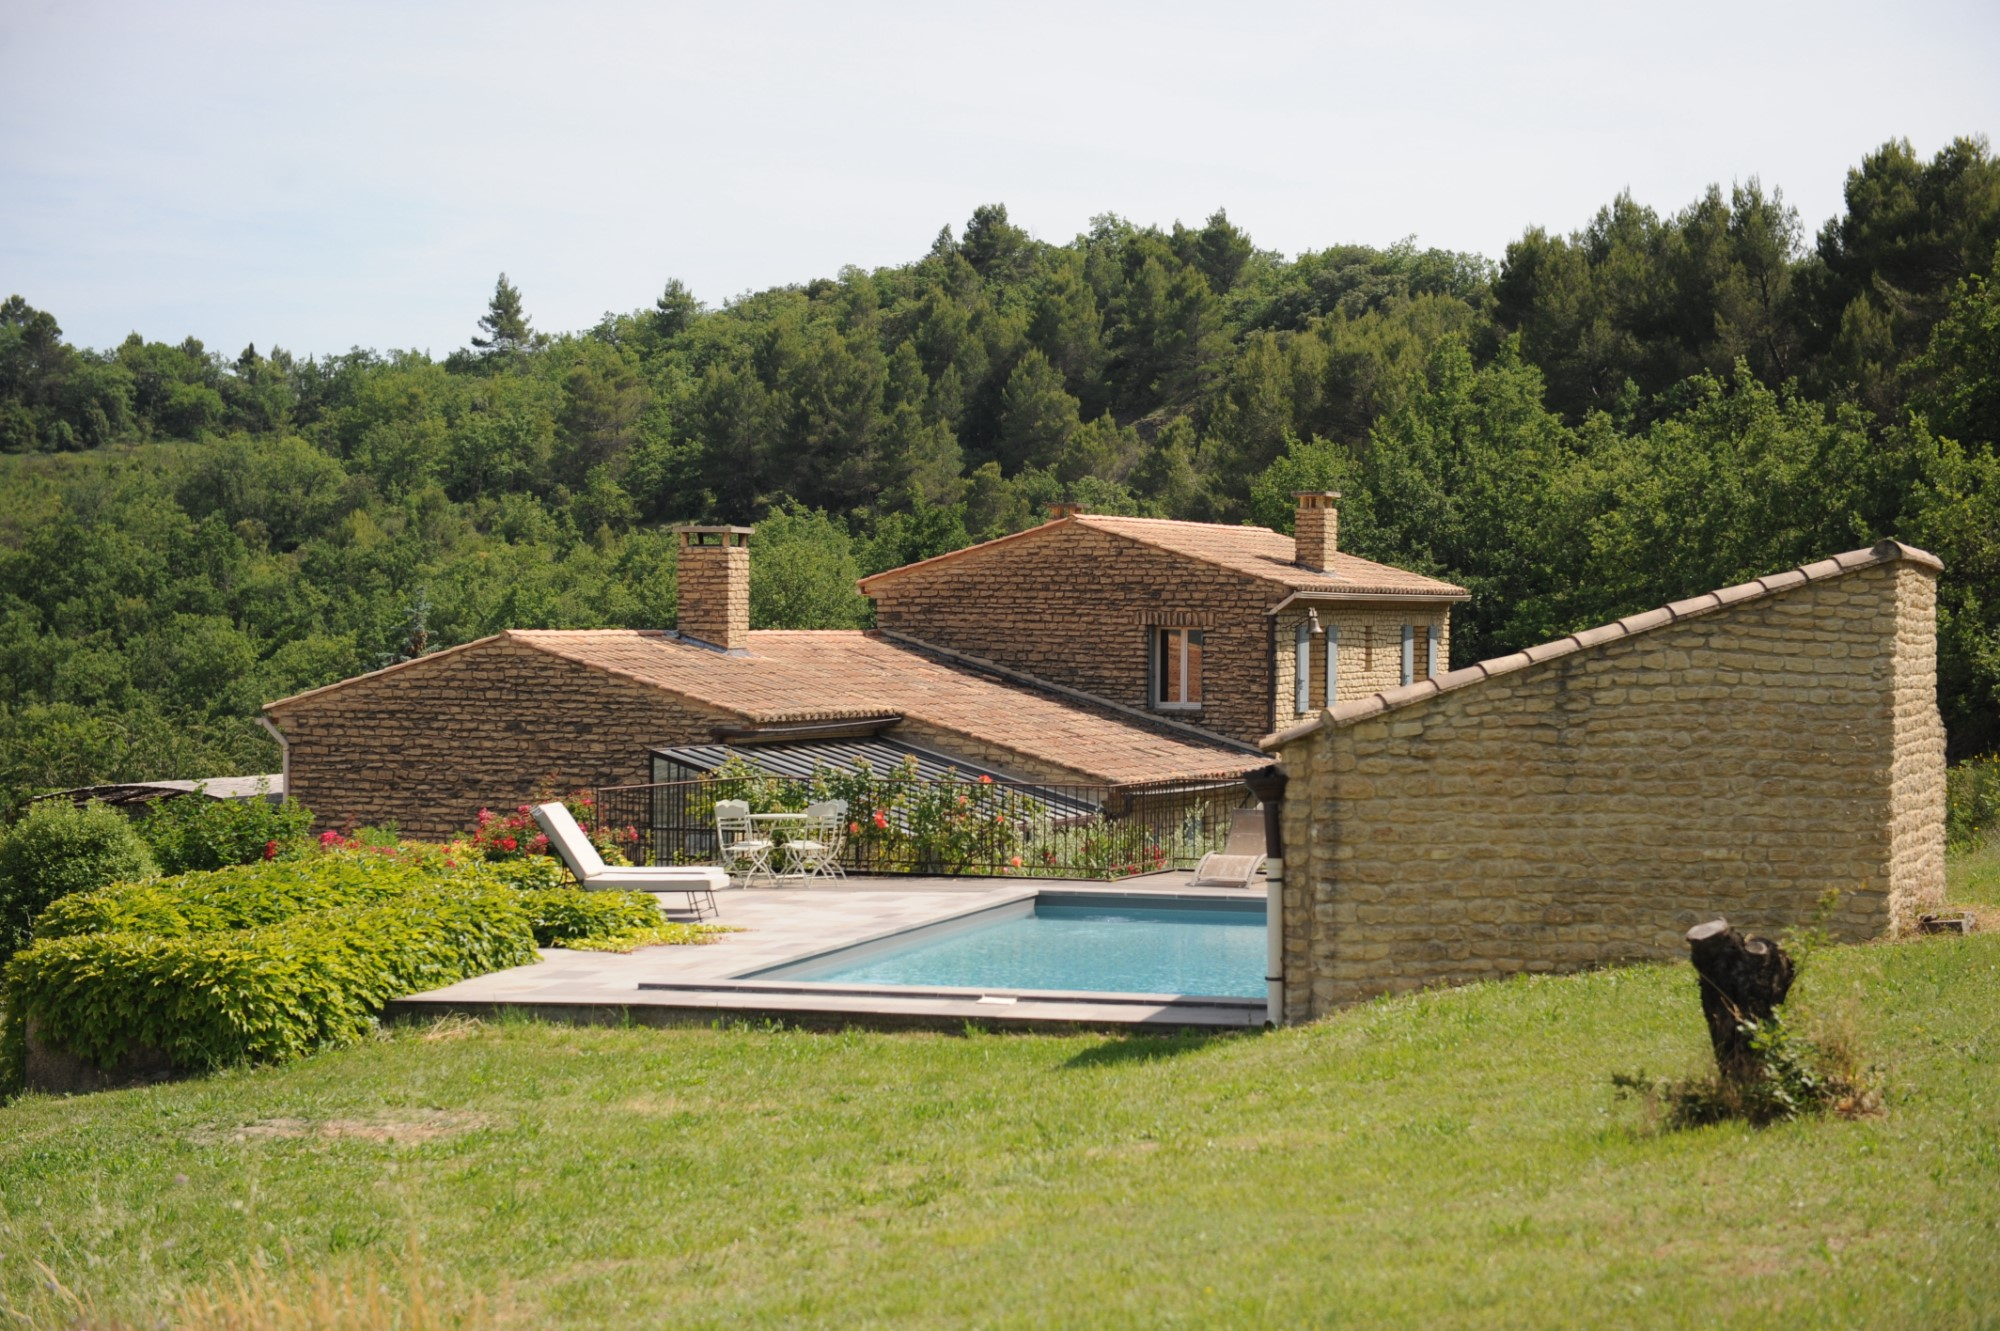 ventes a vendre en luberon belle maison en pierres avec piscine et pool house sur 25 hectares. Black Bedroom Furniture Sets. Home Design Ideas